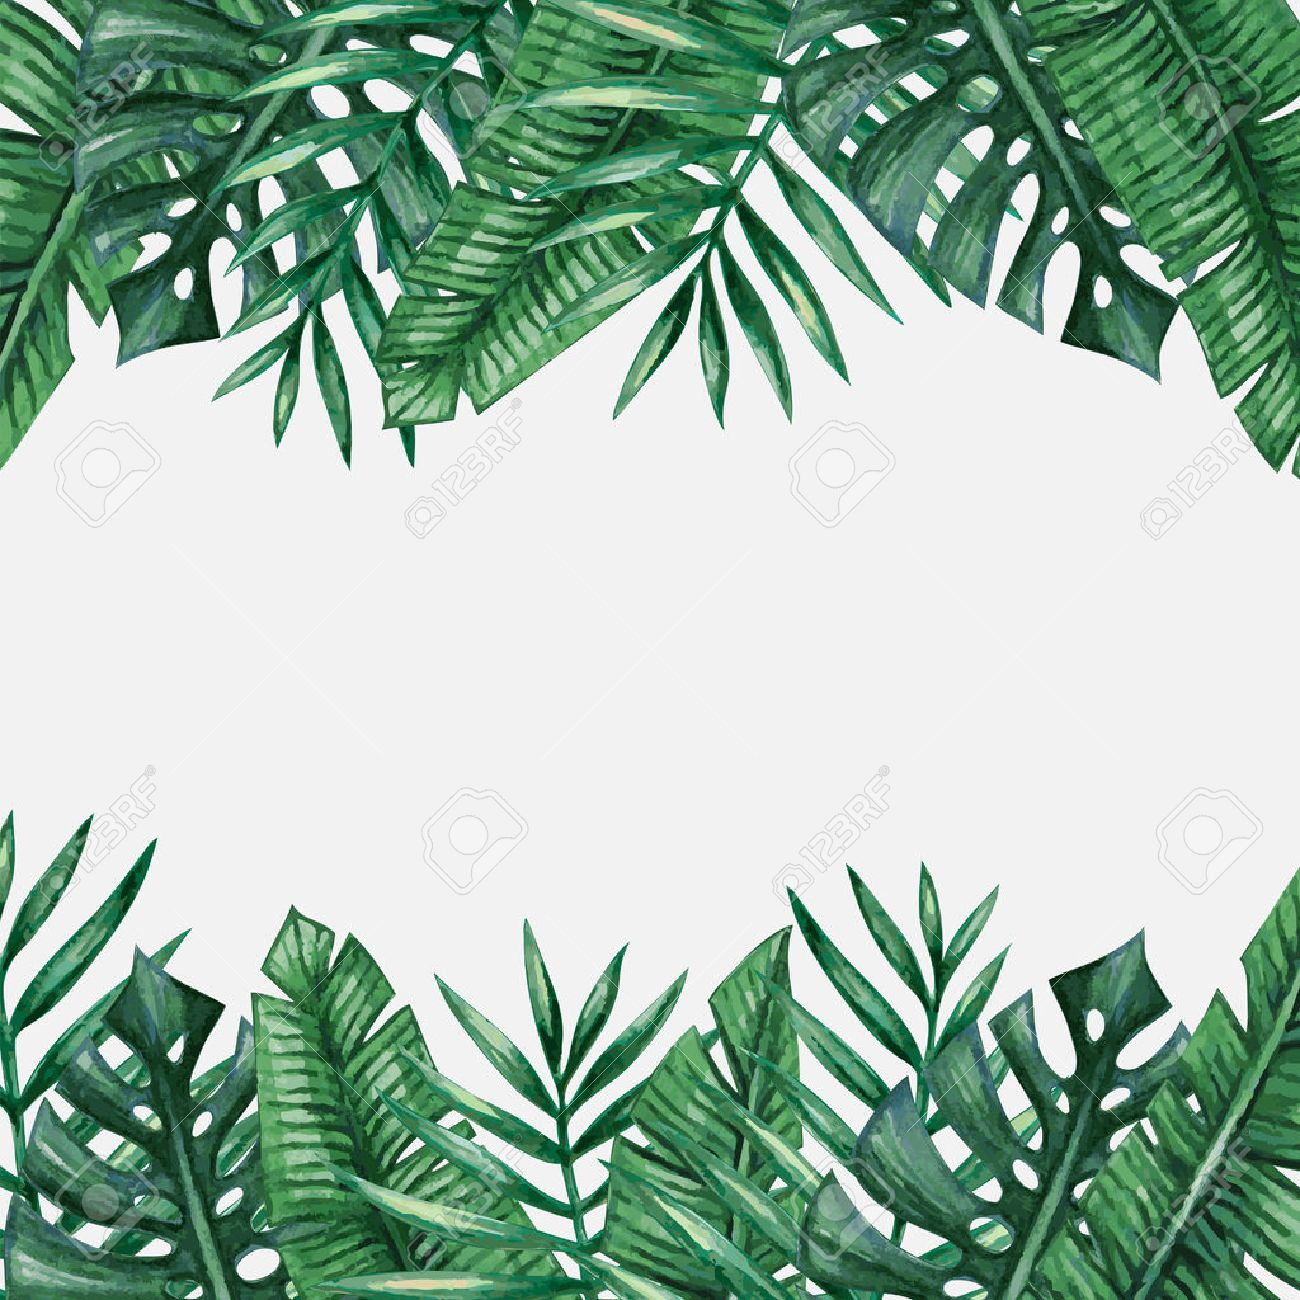 Palm tree leaves background template. Tropical greeting card. - 55951769